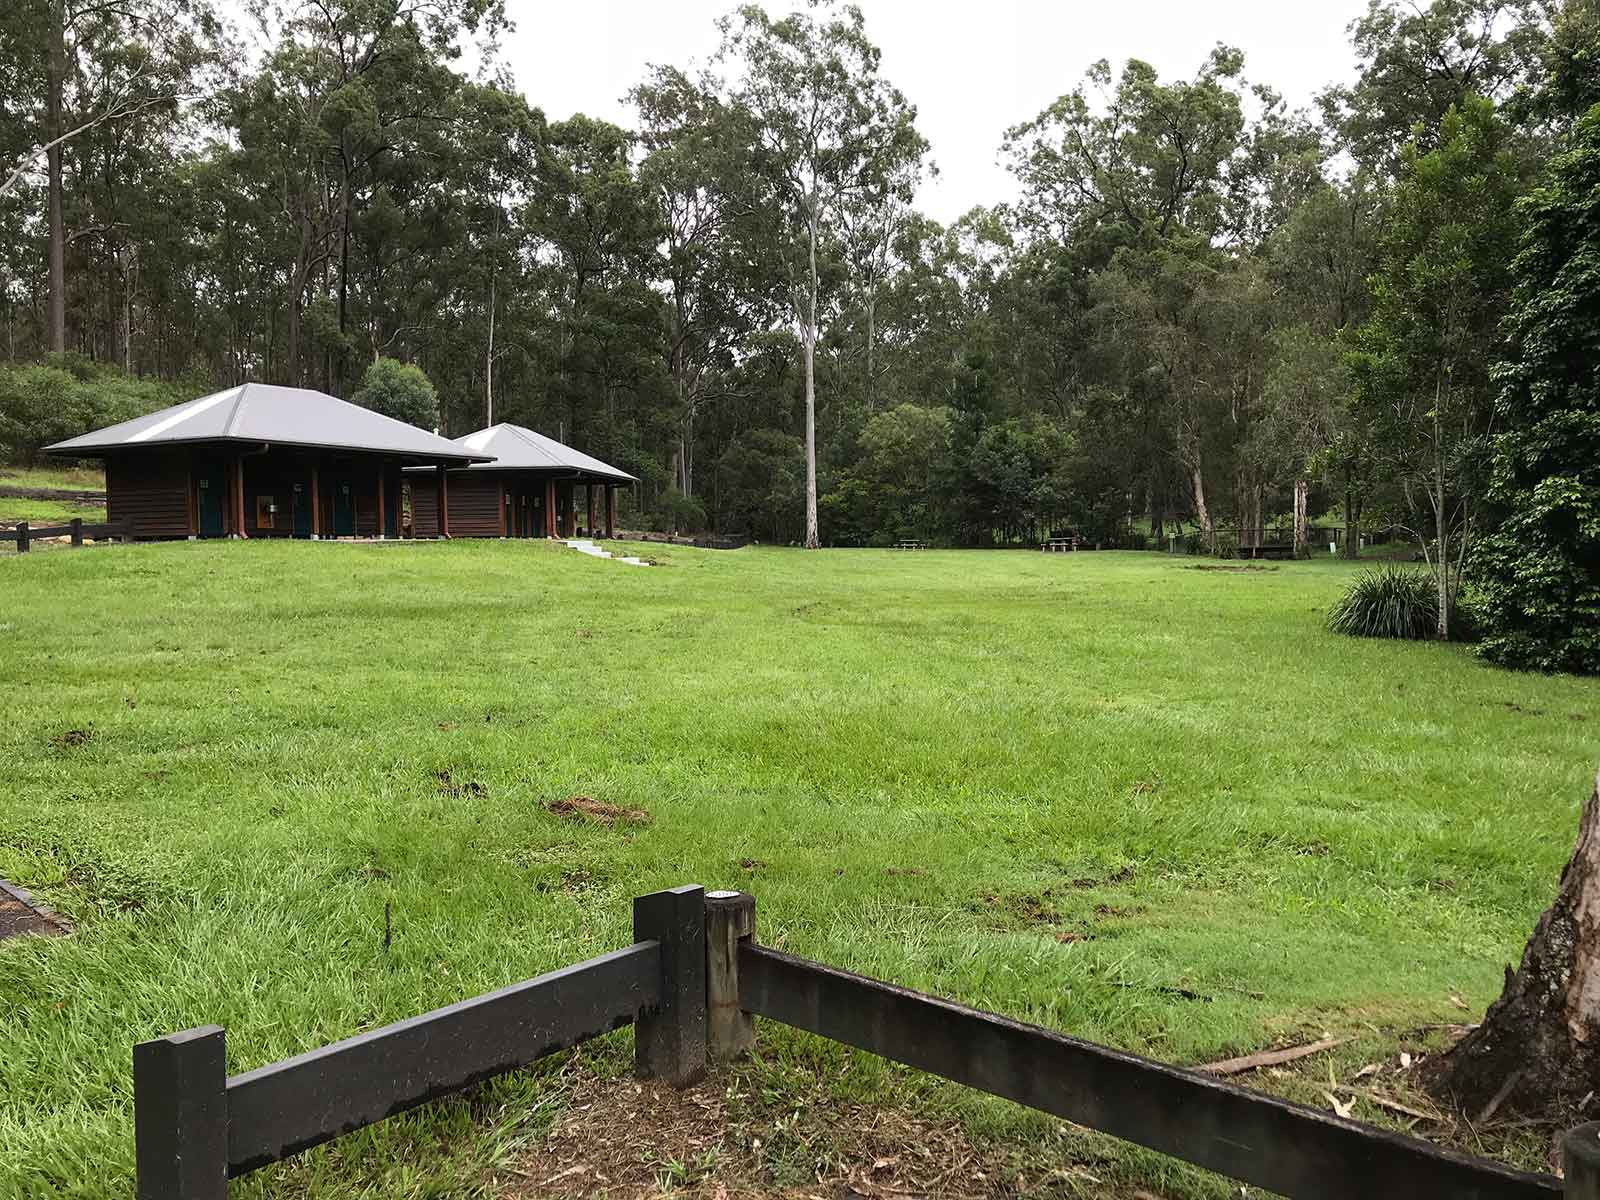 Large rolling open grassy space fringed by forest, with a picnic shelter on a slight rise.